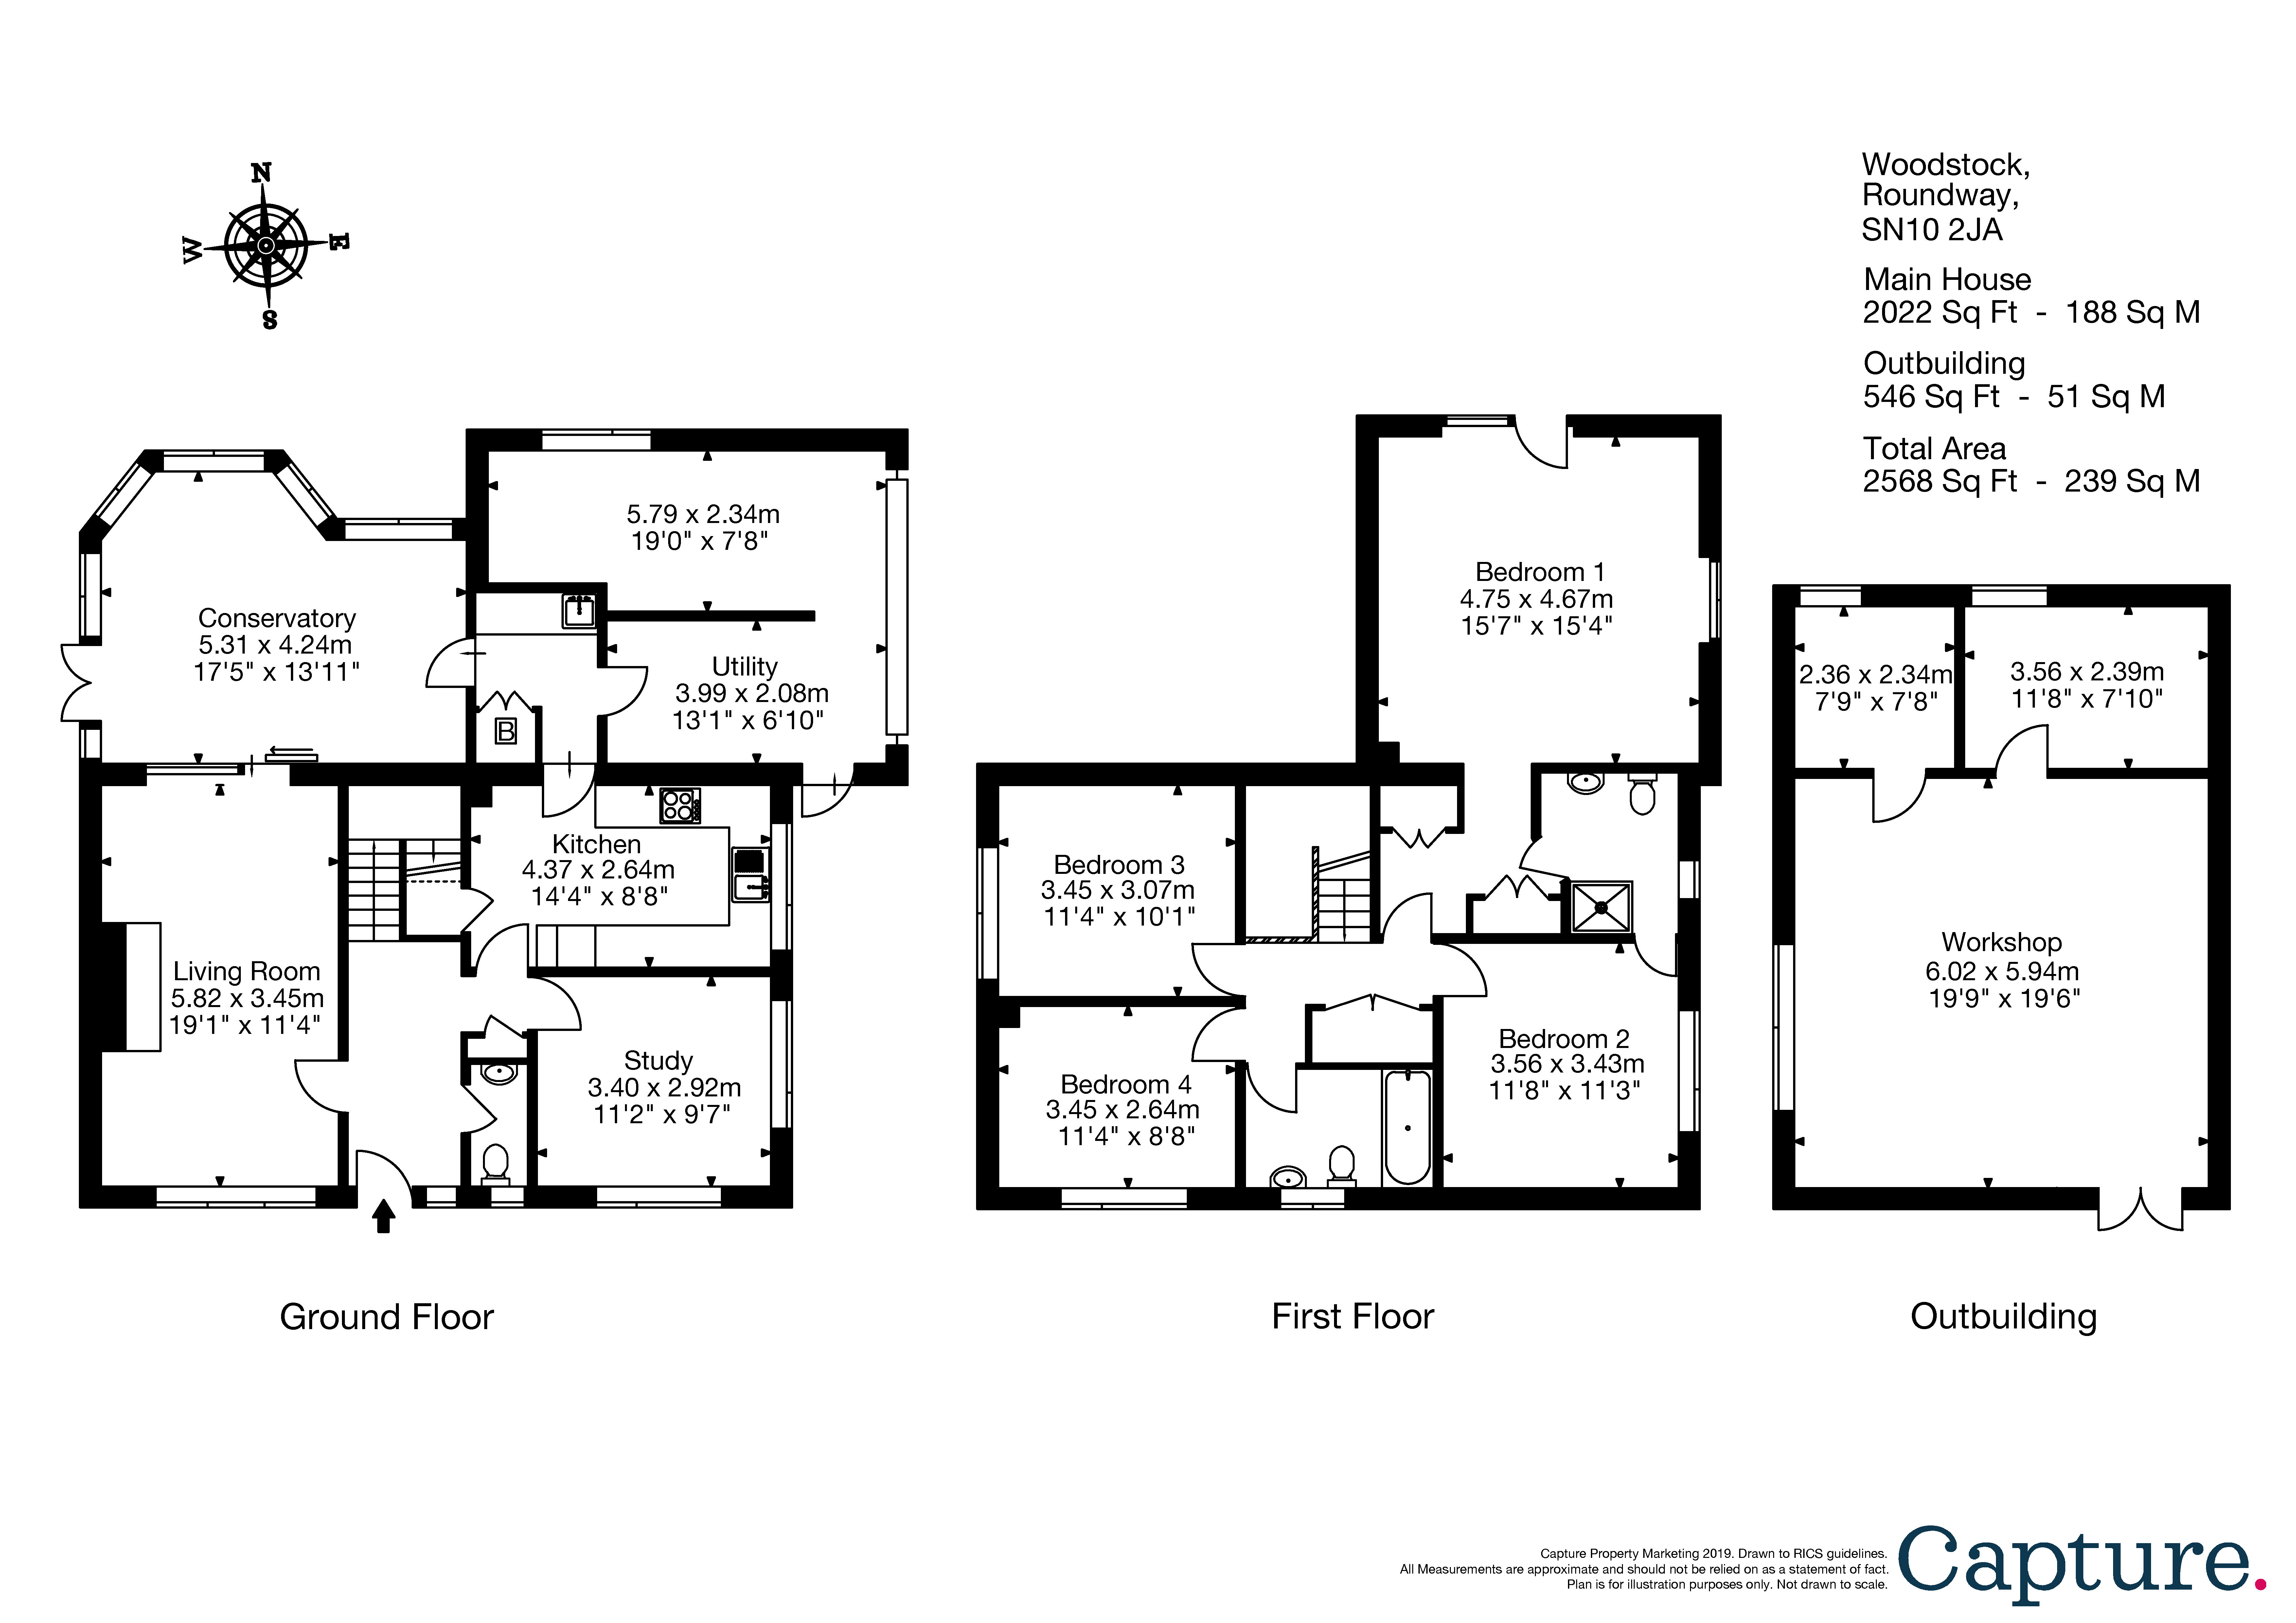 4 bedroom property for sale in Roundway, Devizes